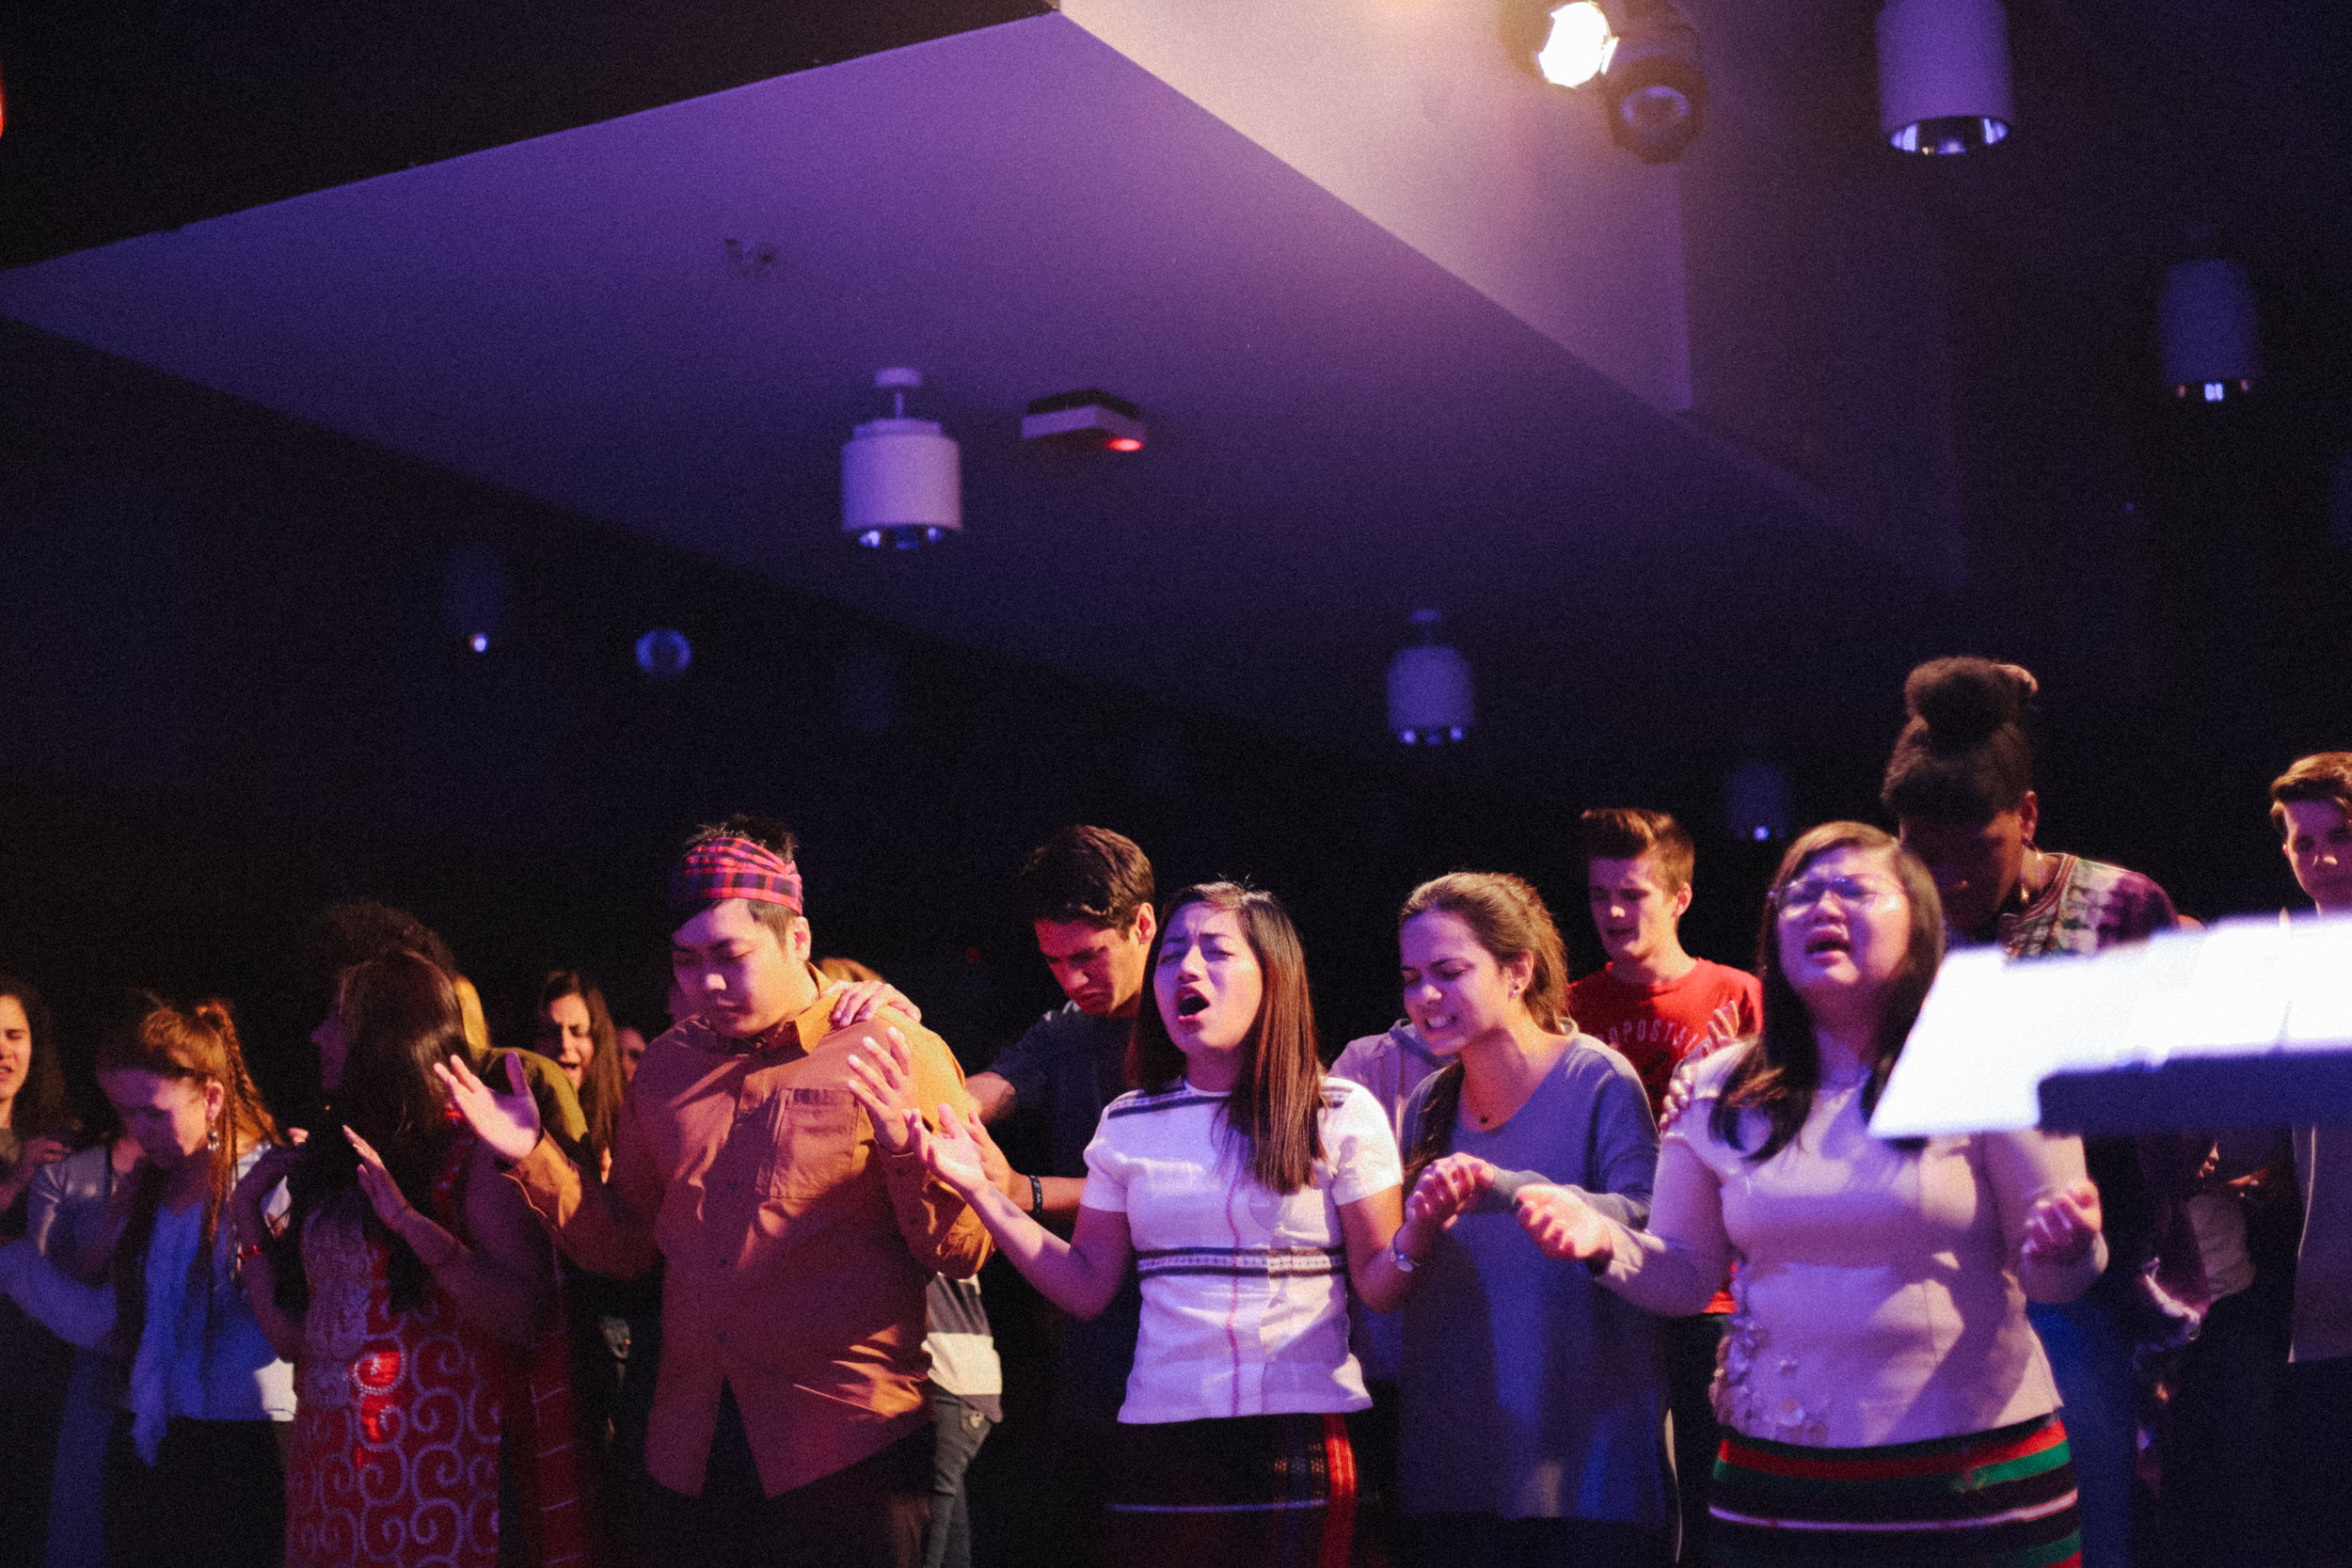 Chapels - Students at Victory College experience spiritual growth through chapels every week. Through student-led worship, spirit-empowered messages, and community, students are refreshed and challenged to fulfill the call on their life.